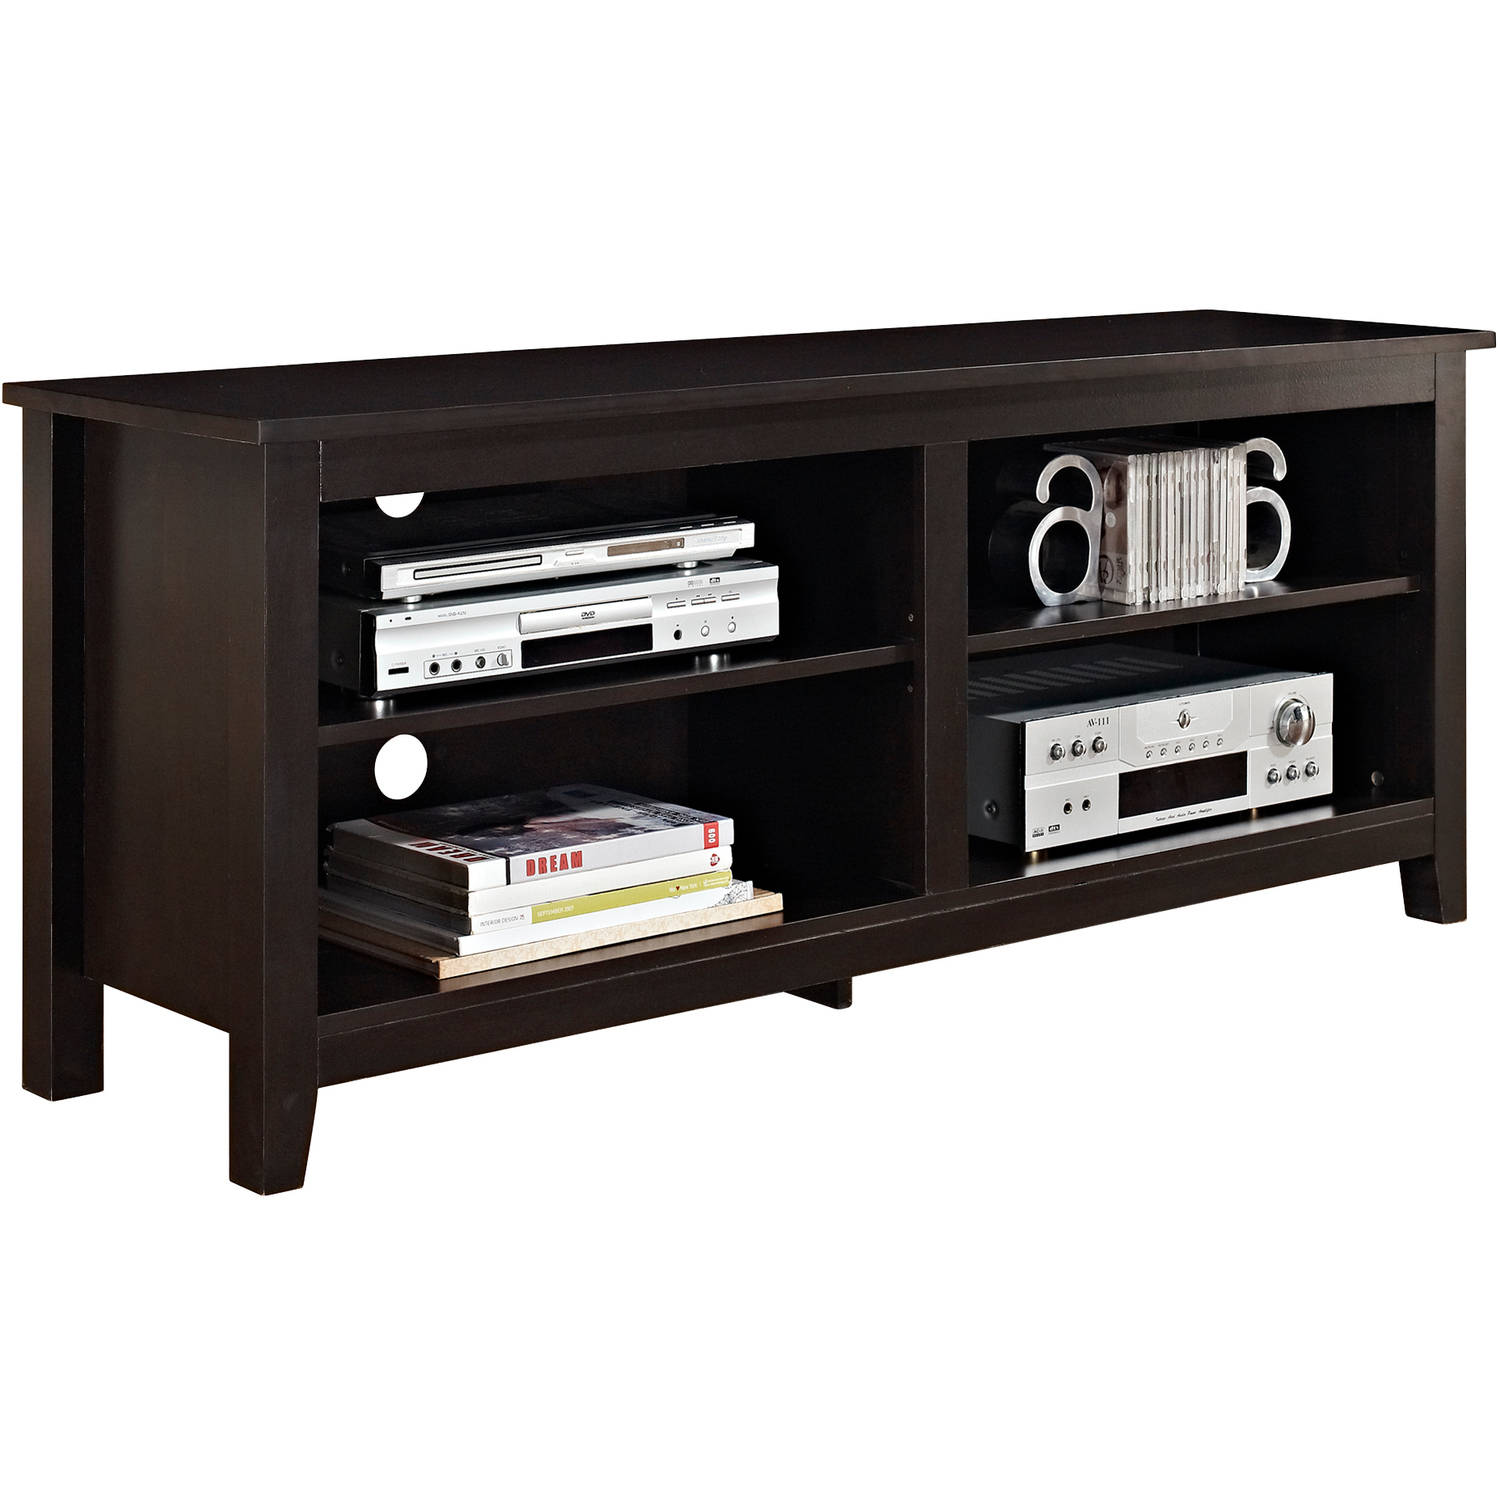 ... Picture 3 Of 3. Rustic Wood TV Stand Drift Entertainment Center Media  Storage ...